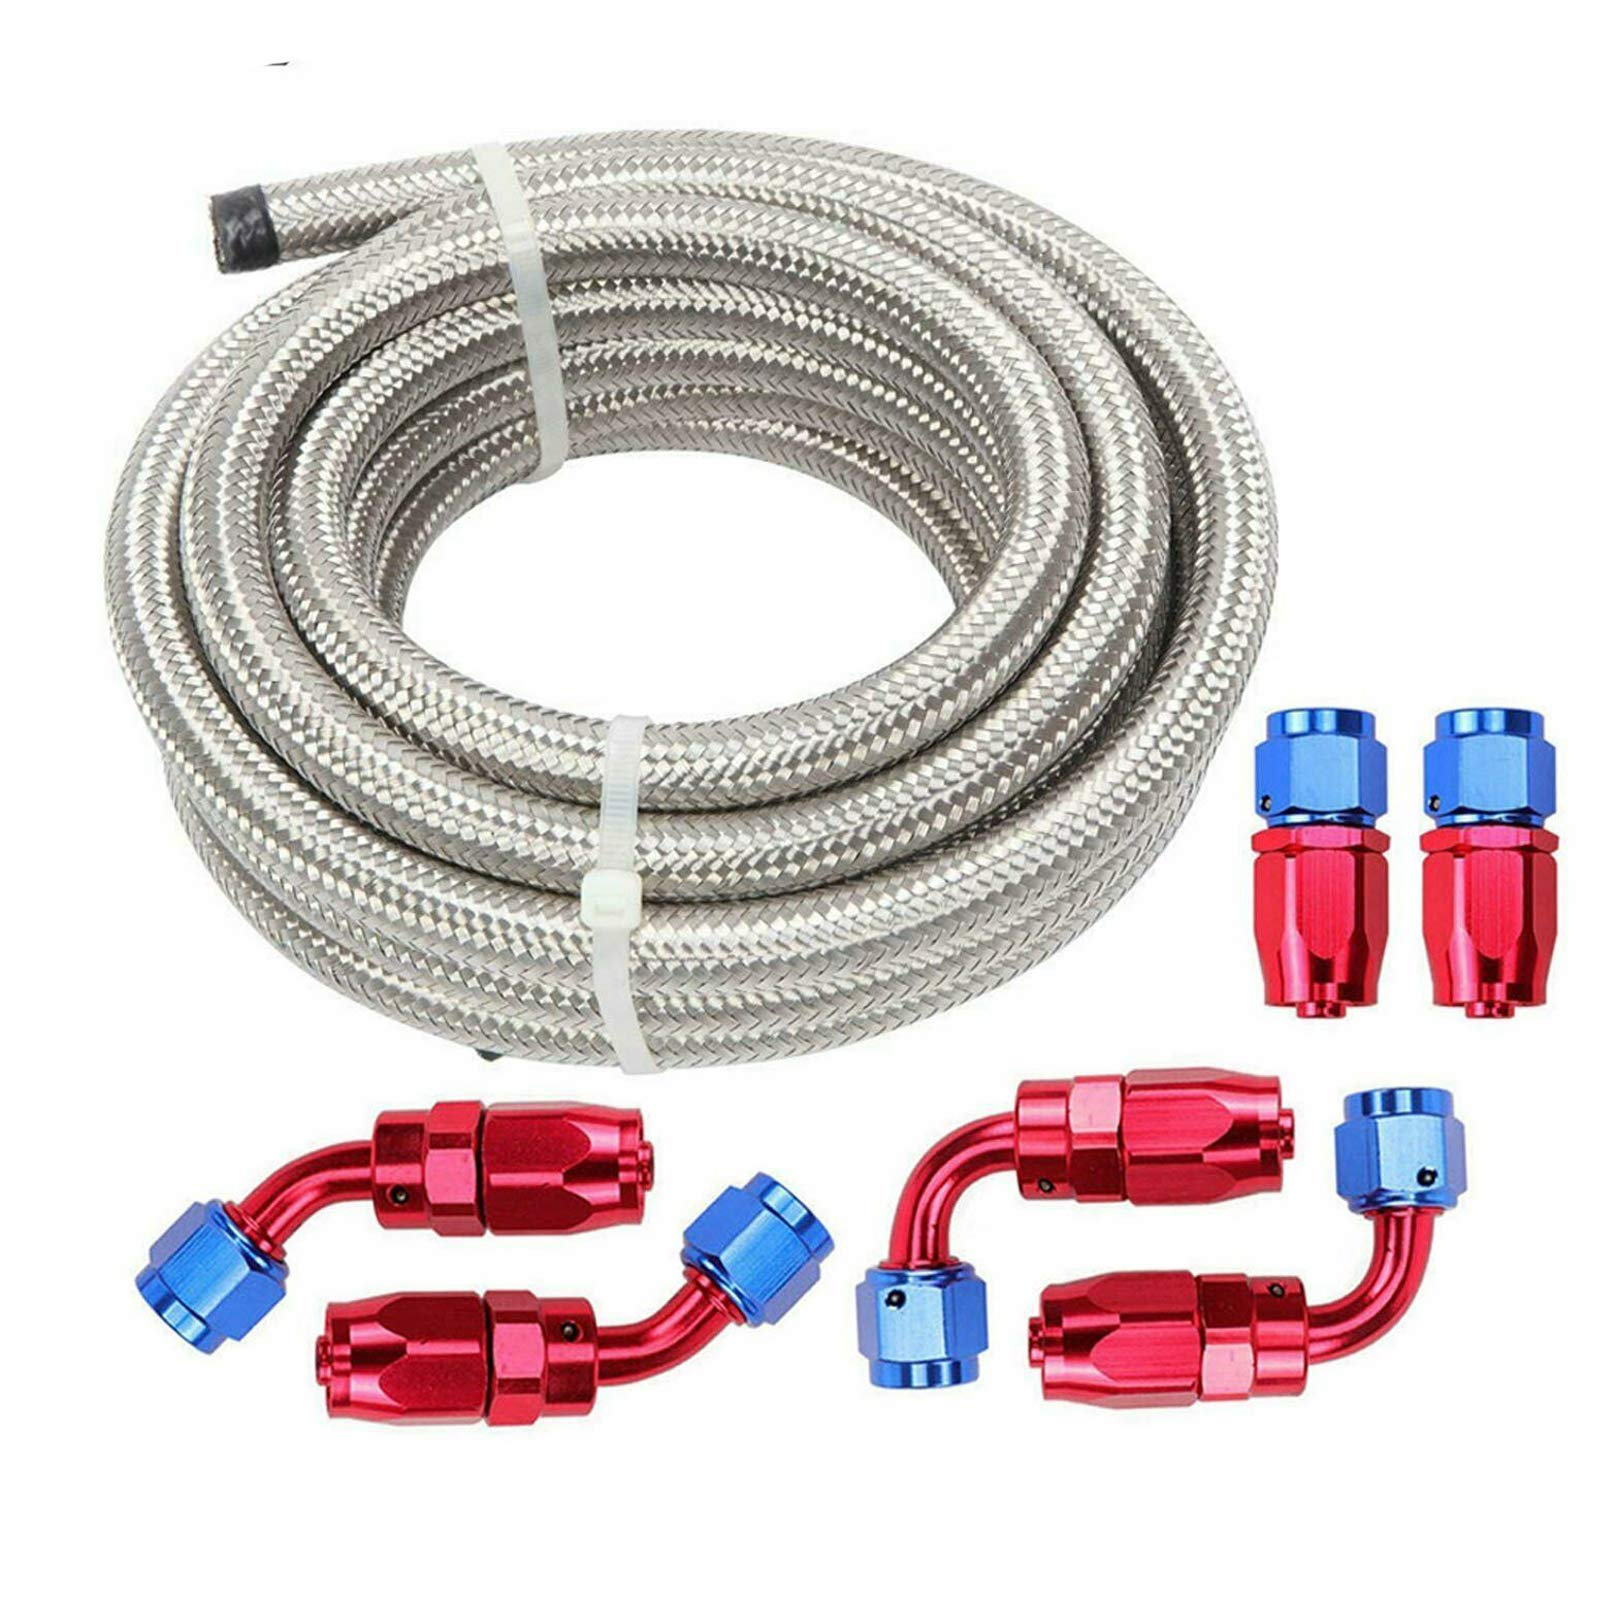 8AN Fuel Line Hose Kit,Stainless Steel Braided PTFE E85 Tube 10Ft with 8AN Hose fittings Red&Blue (6 PCS)